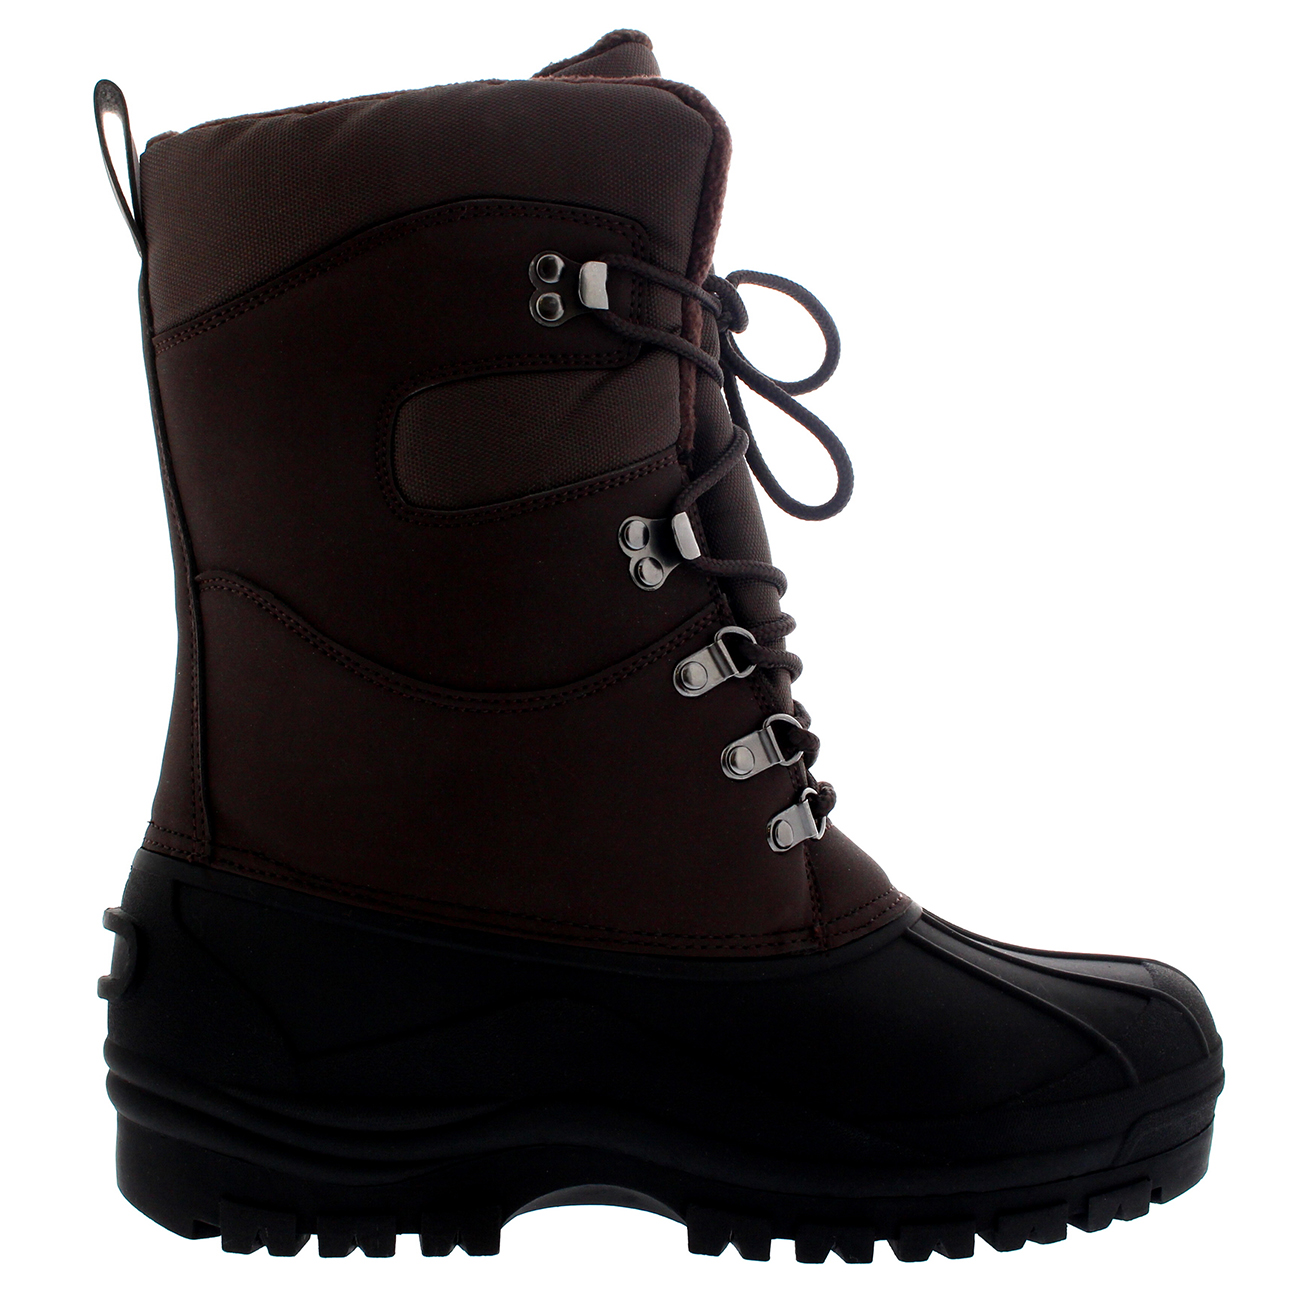 Polar Mens Snow Hiking Mucker Duck Grafters Waterproof Saftey Thermal Boots